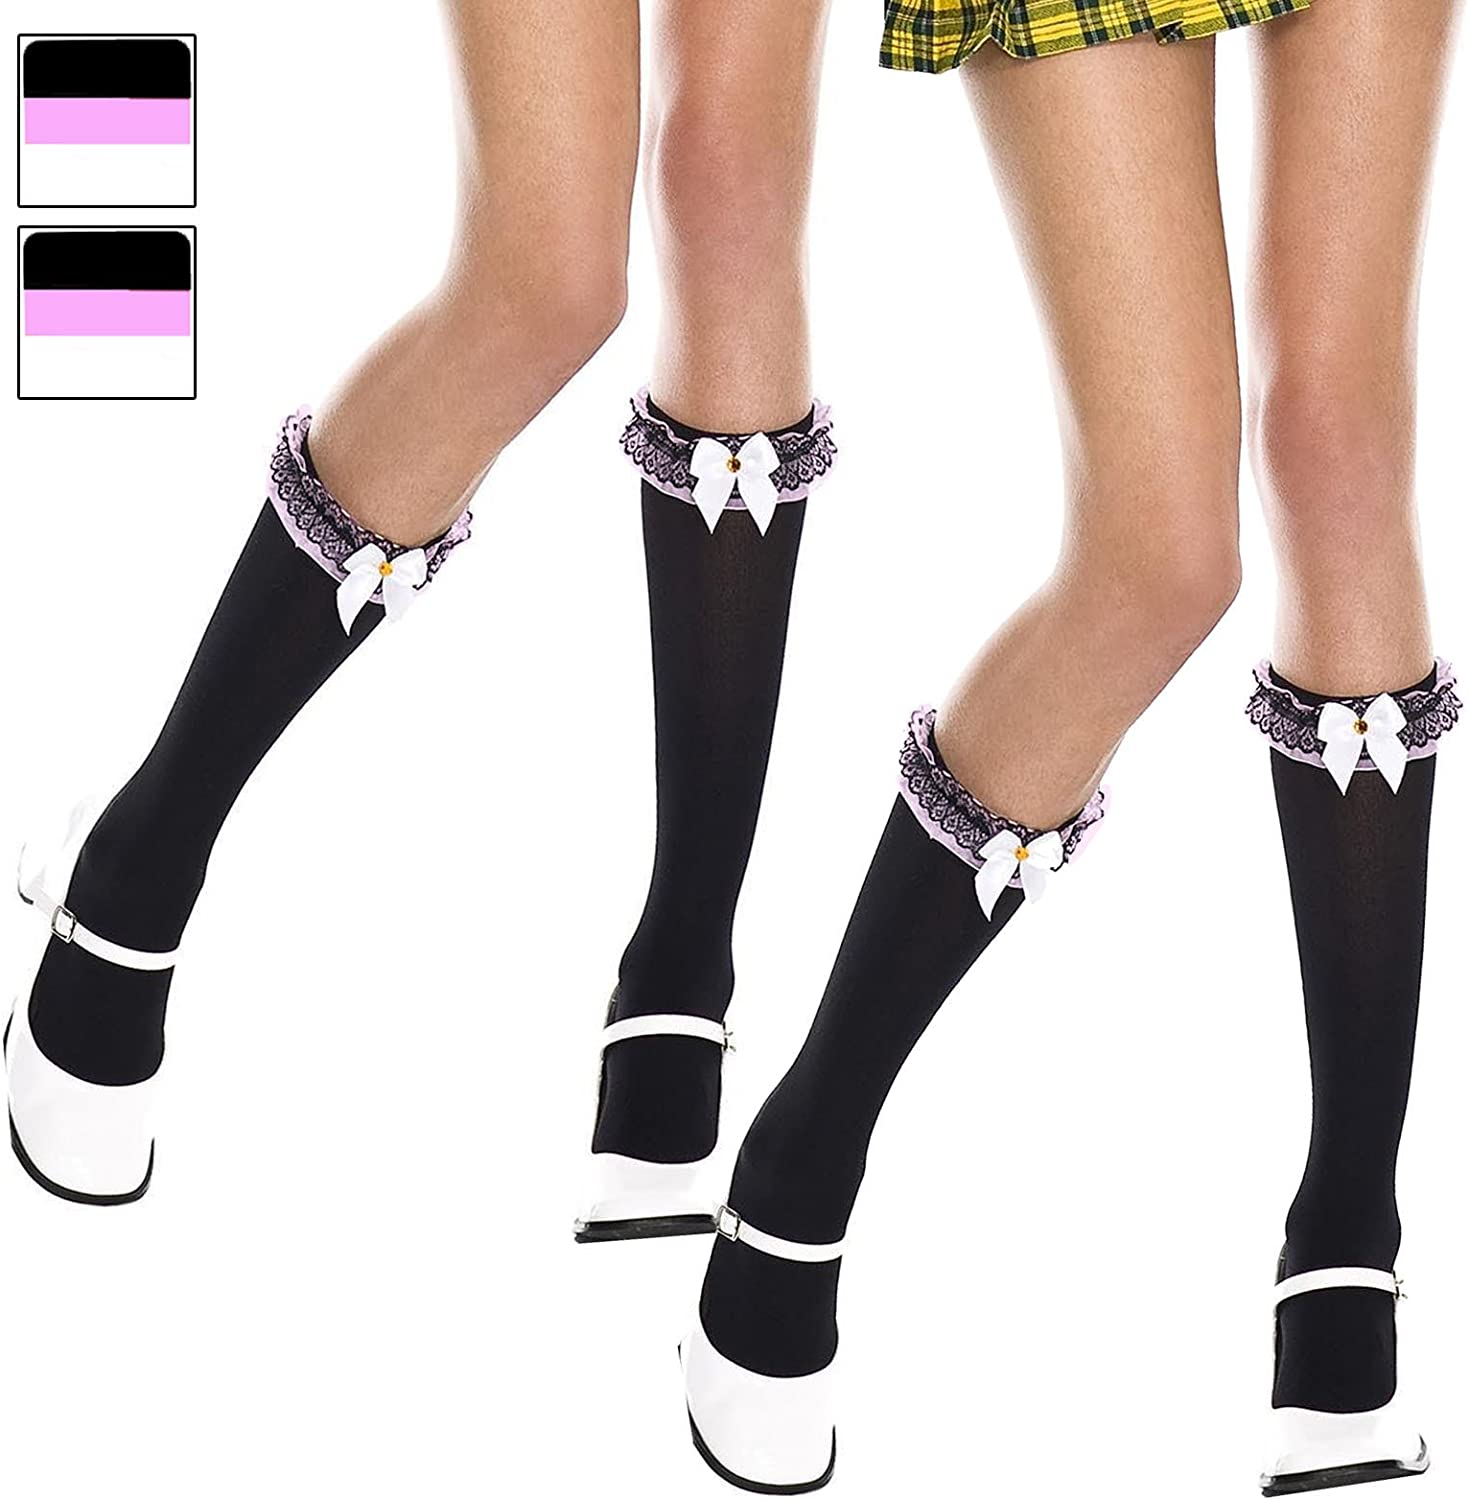 BLACK and WHITE OPAQUE Anklets w// LACE UP LACE TOPS